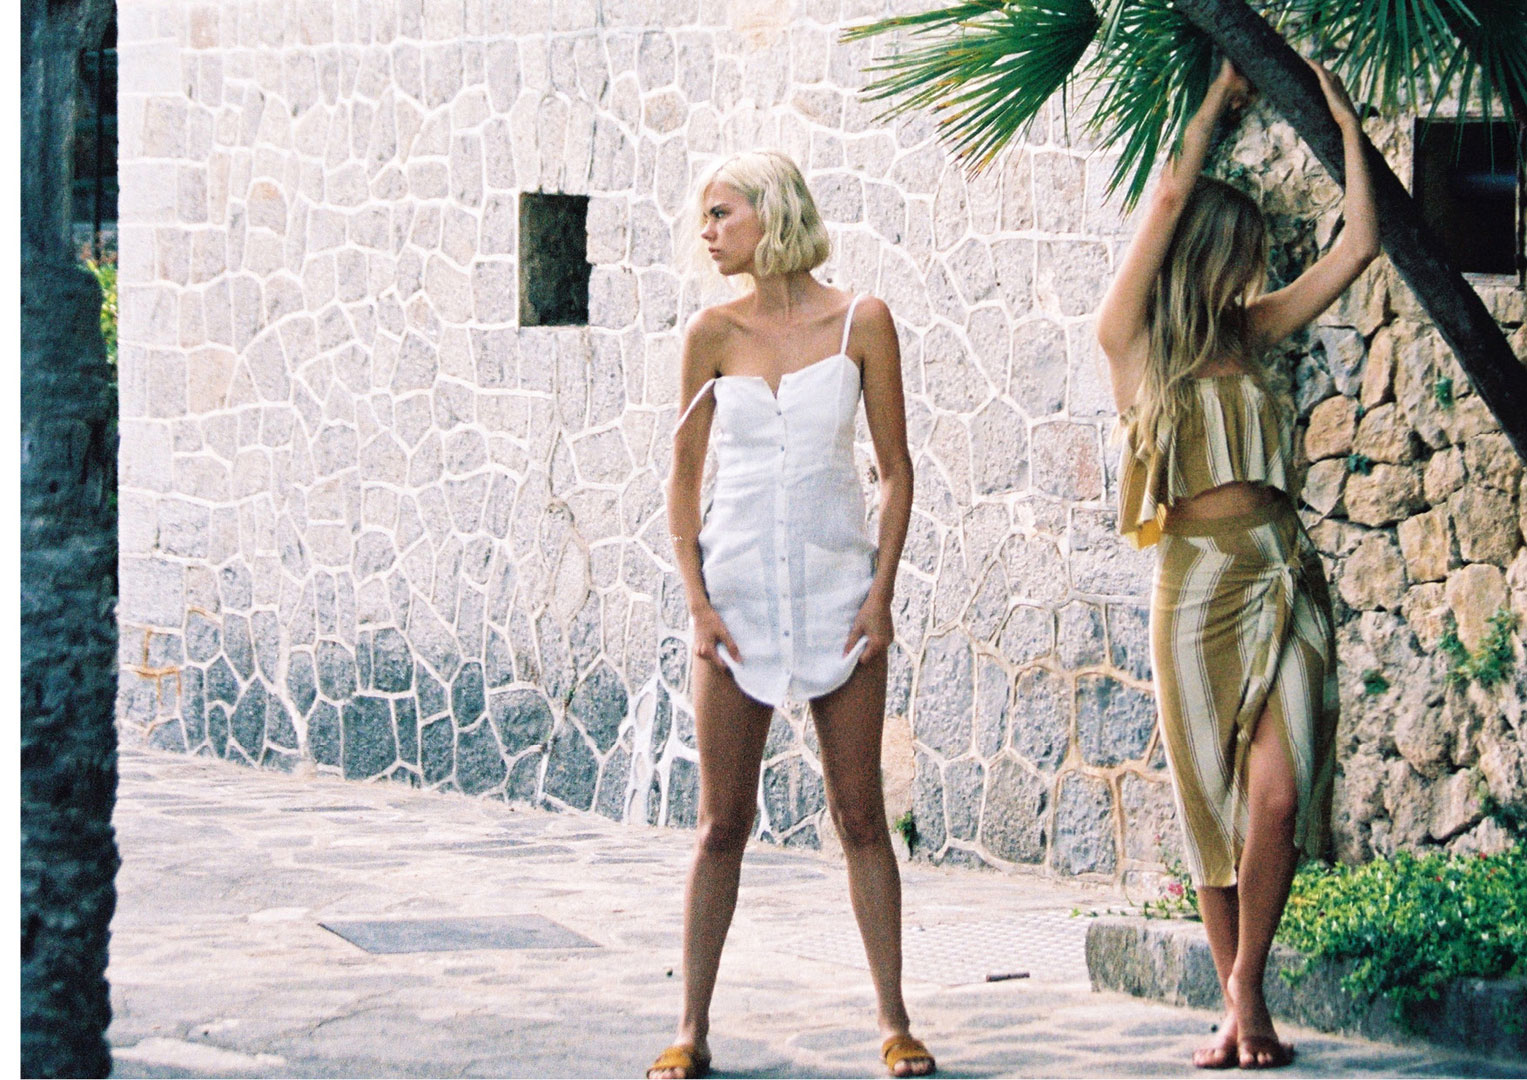 Charlie Newman and Julia Almendra - Faithfull Brand The Holiday spring 2017 premium edition